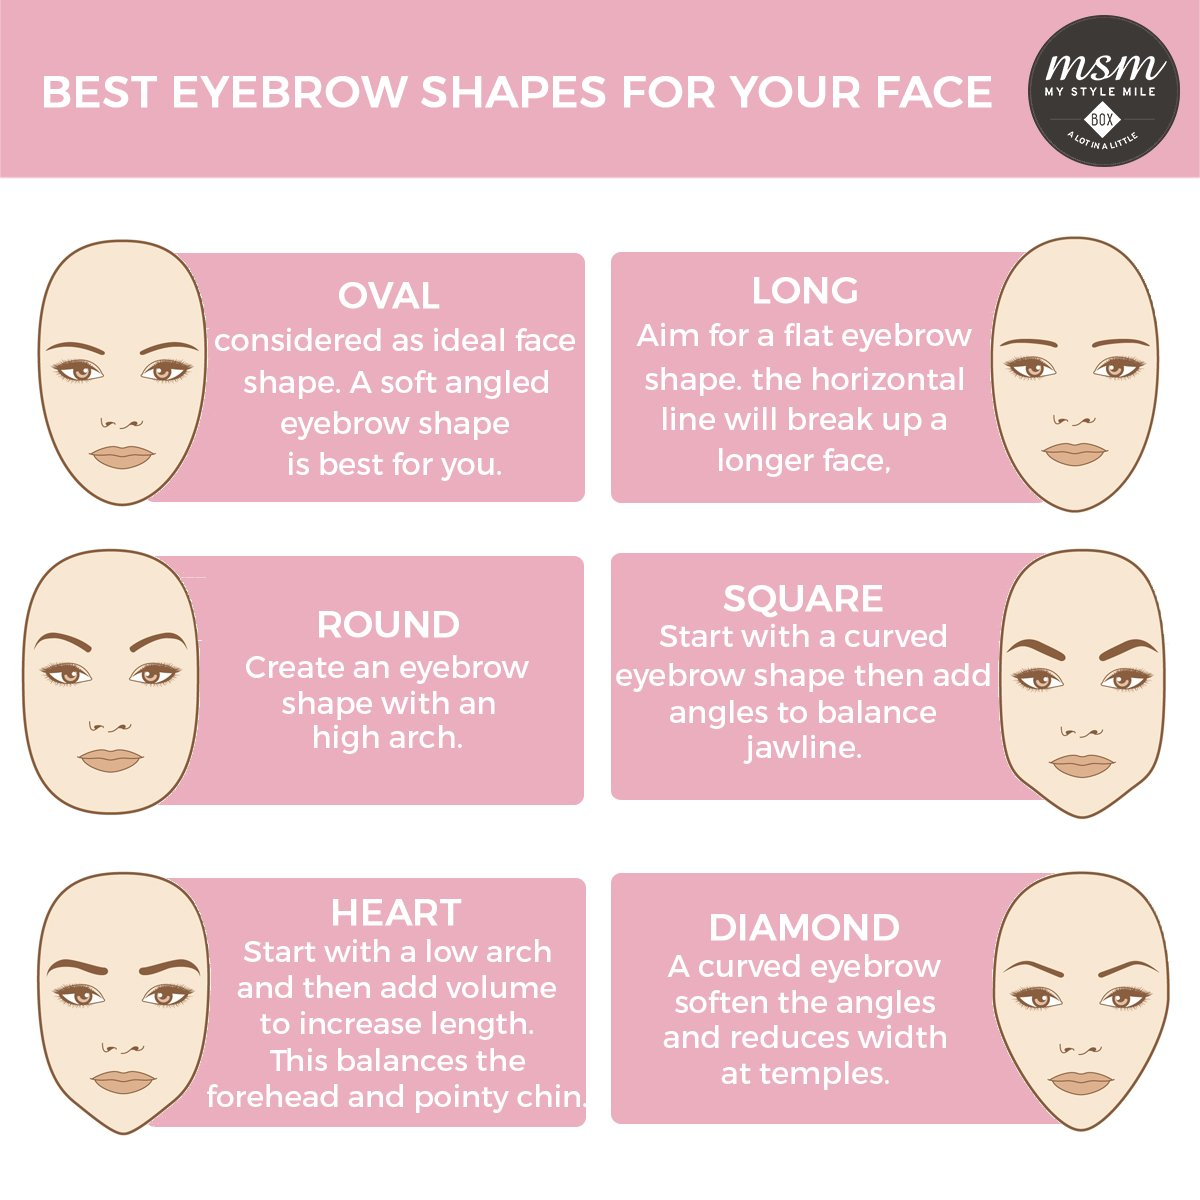 Proper Eyebrow Shape For Your Face The Eyebrow